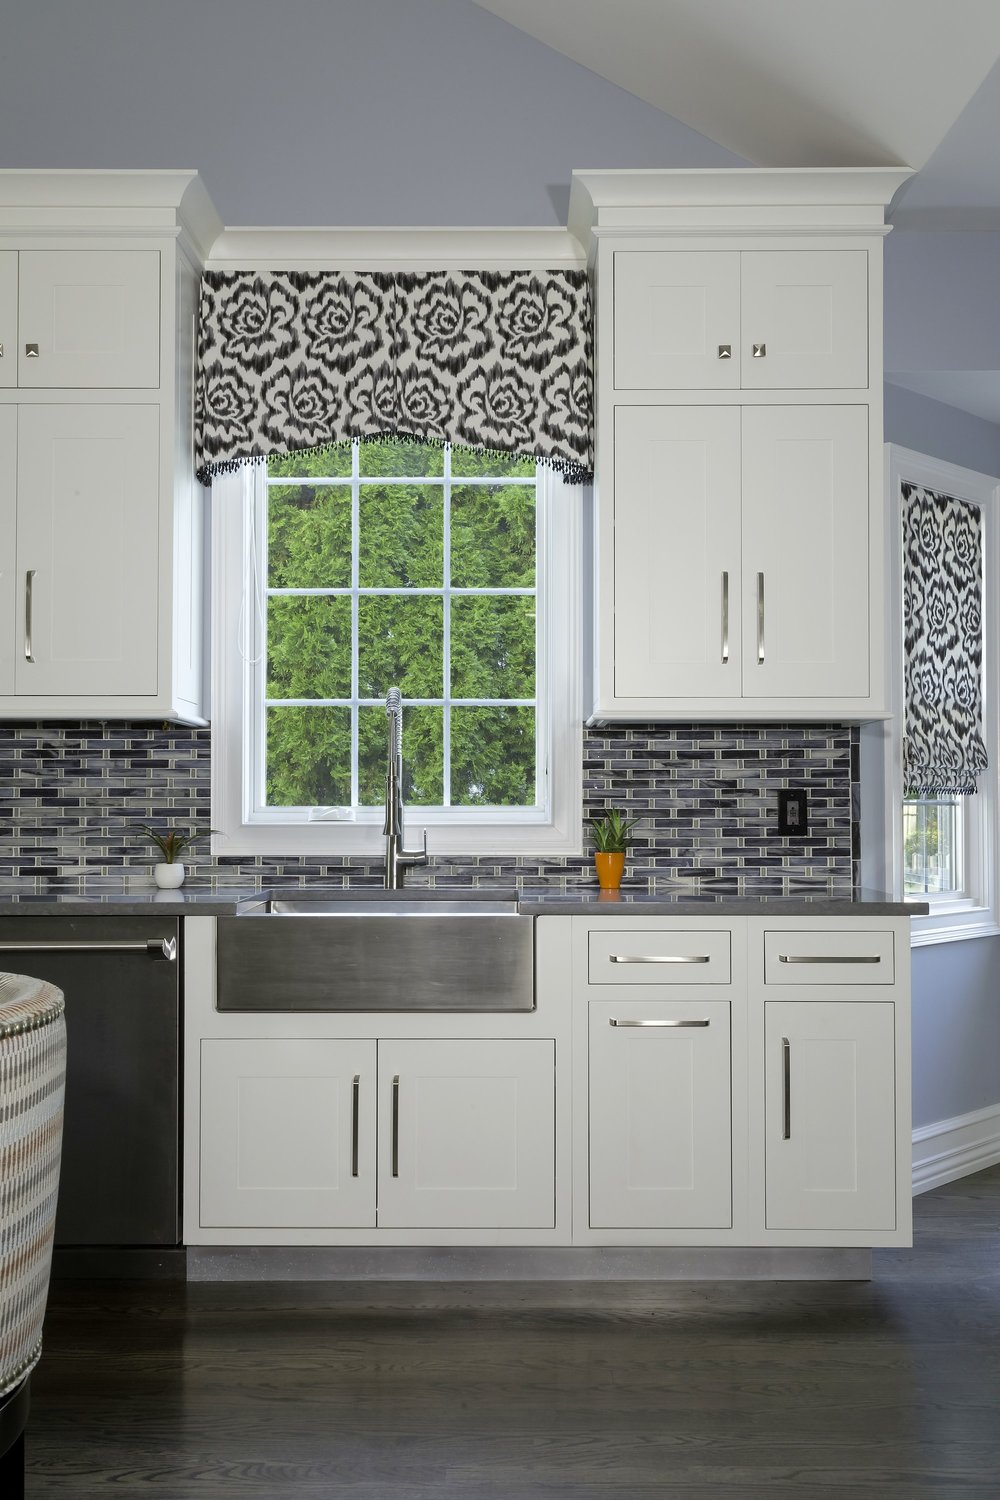 Transitional style kitchen with upper cabinet and kitchen drawers